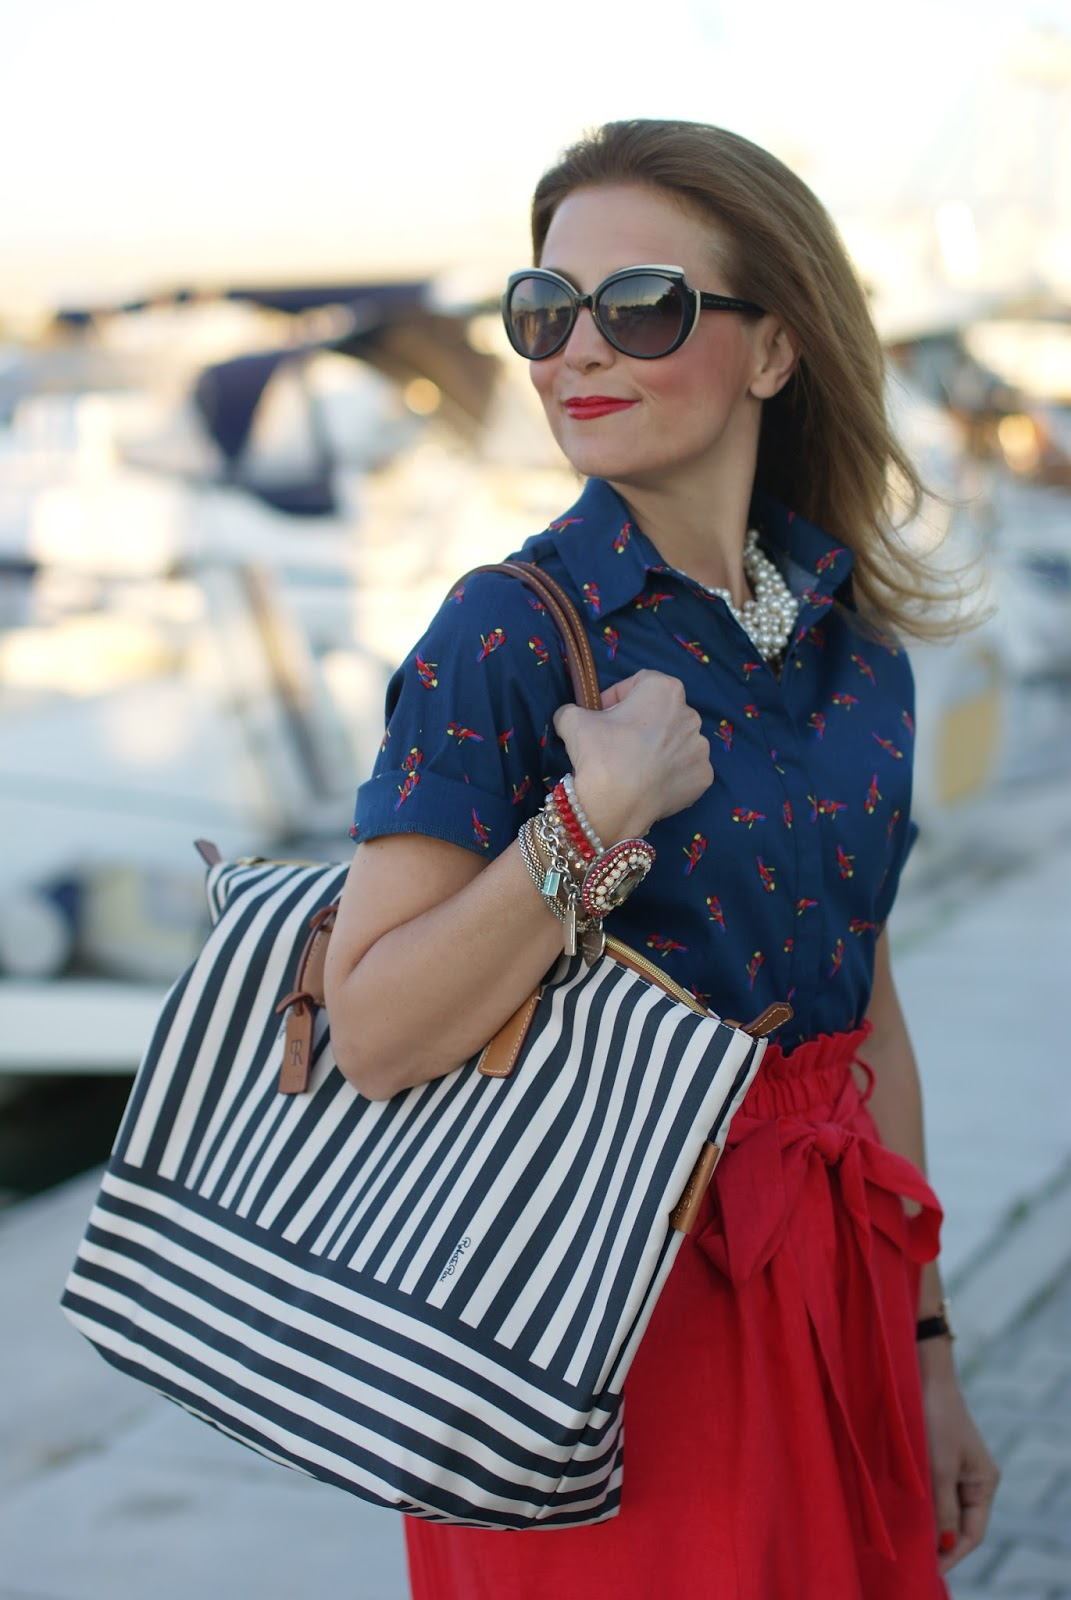 Chic holiday stile with a Robertina stripe bag and parrot print shirt on Fashion and Cookies fashion blog